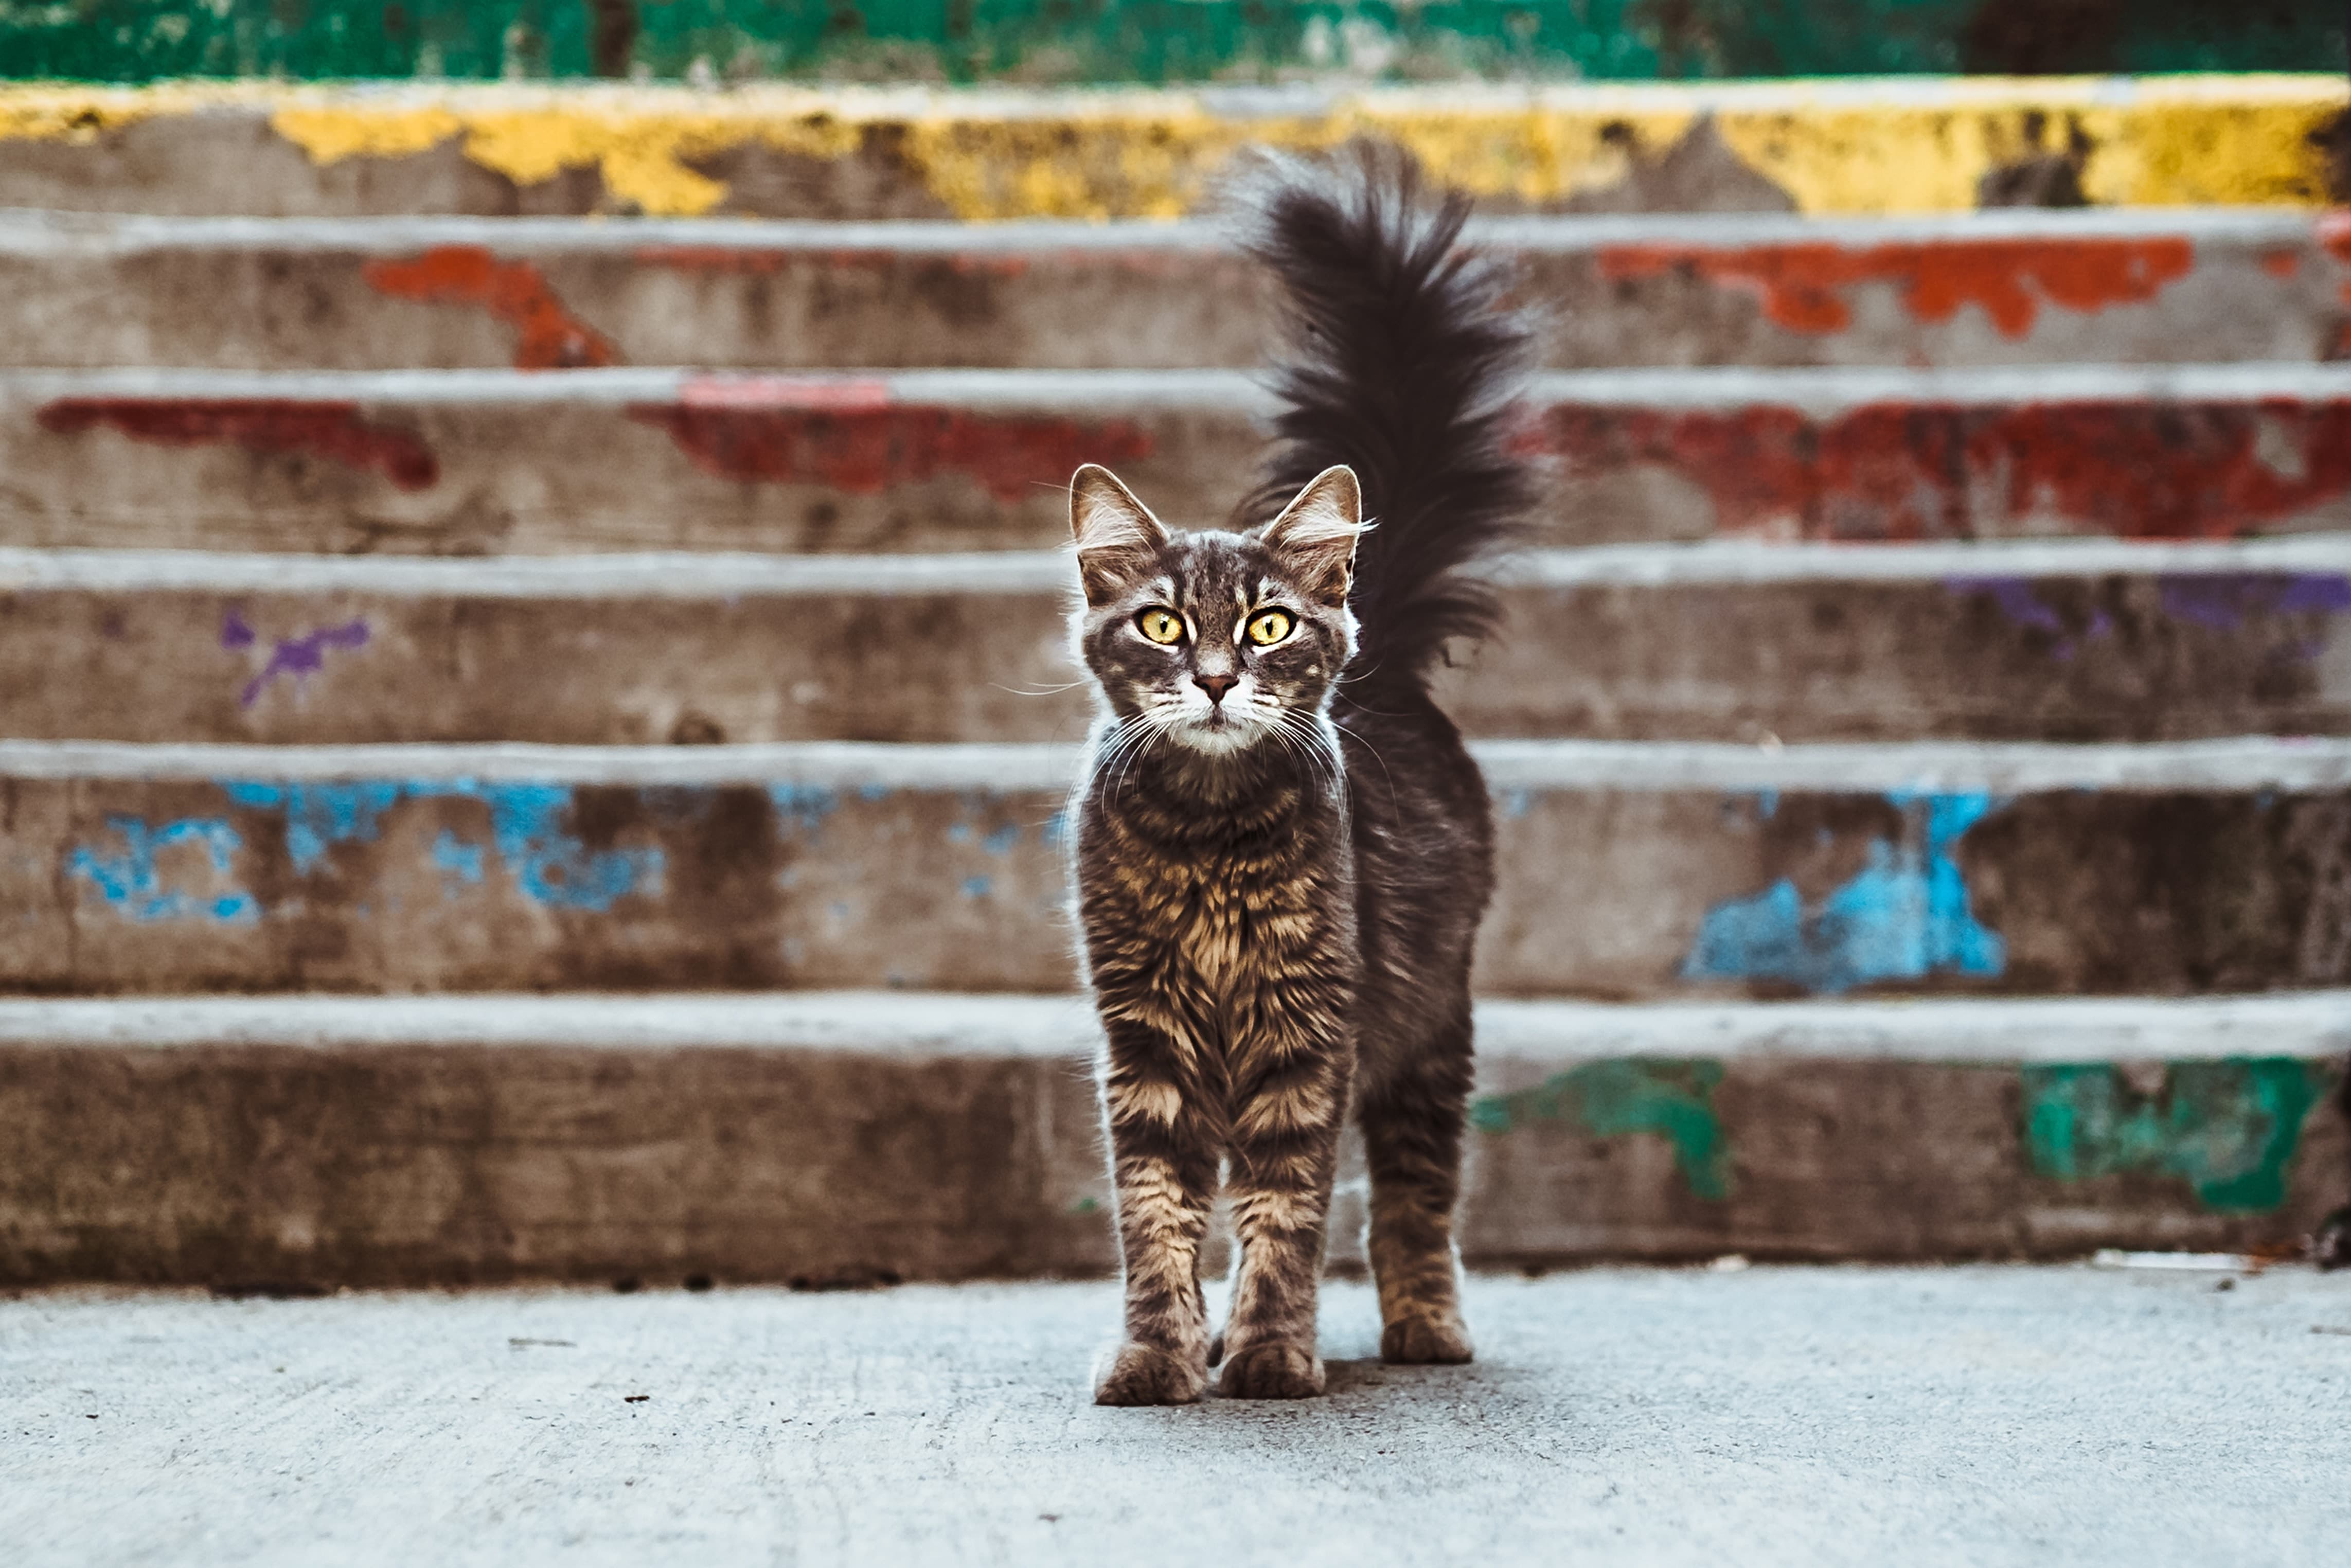 Don't lose your cat when moving house. Update your microchip